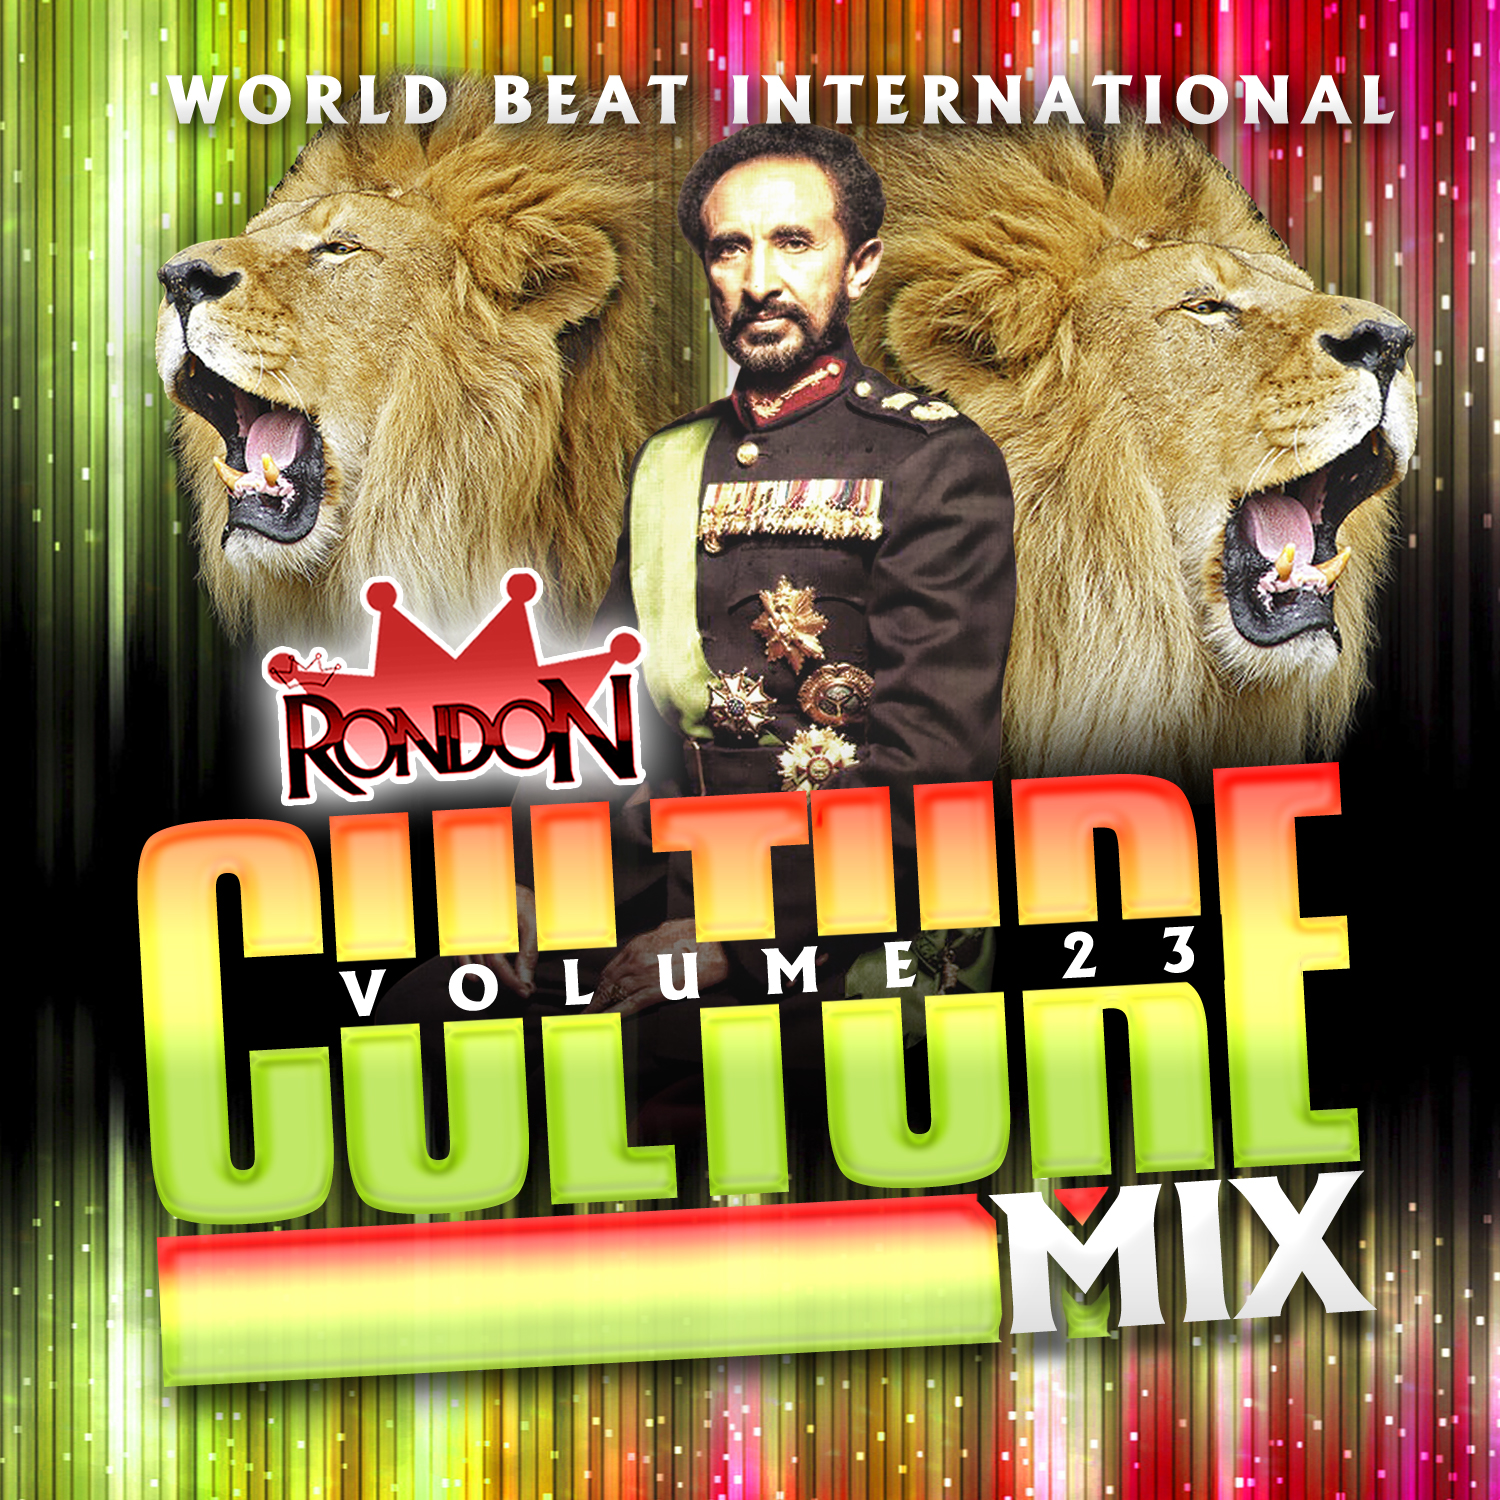 CULTURE MIX REGGAE VOL. 23 (DOWNLOAD ONLY)